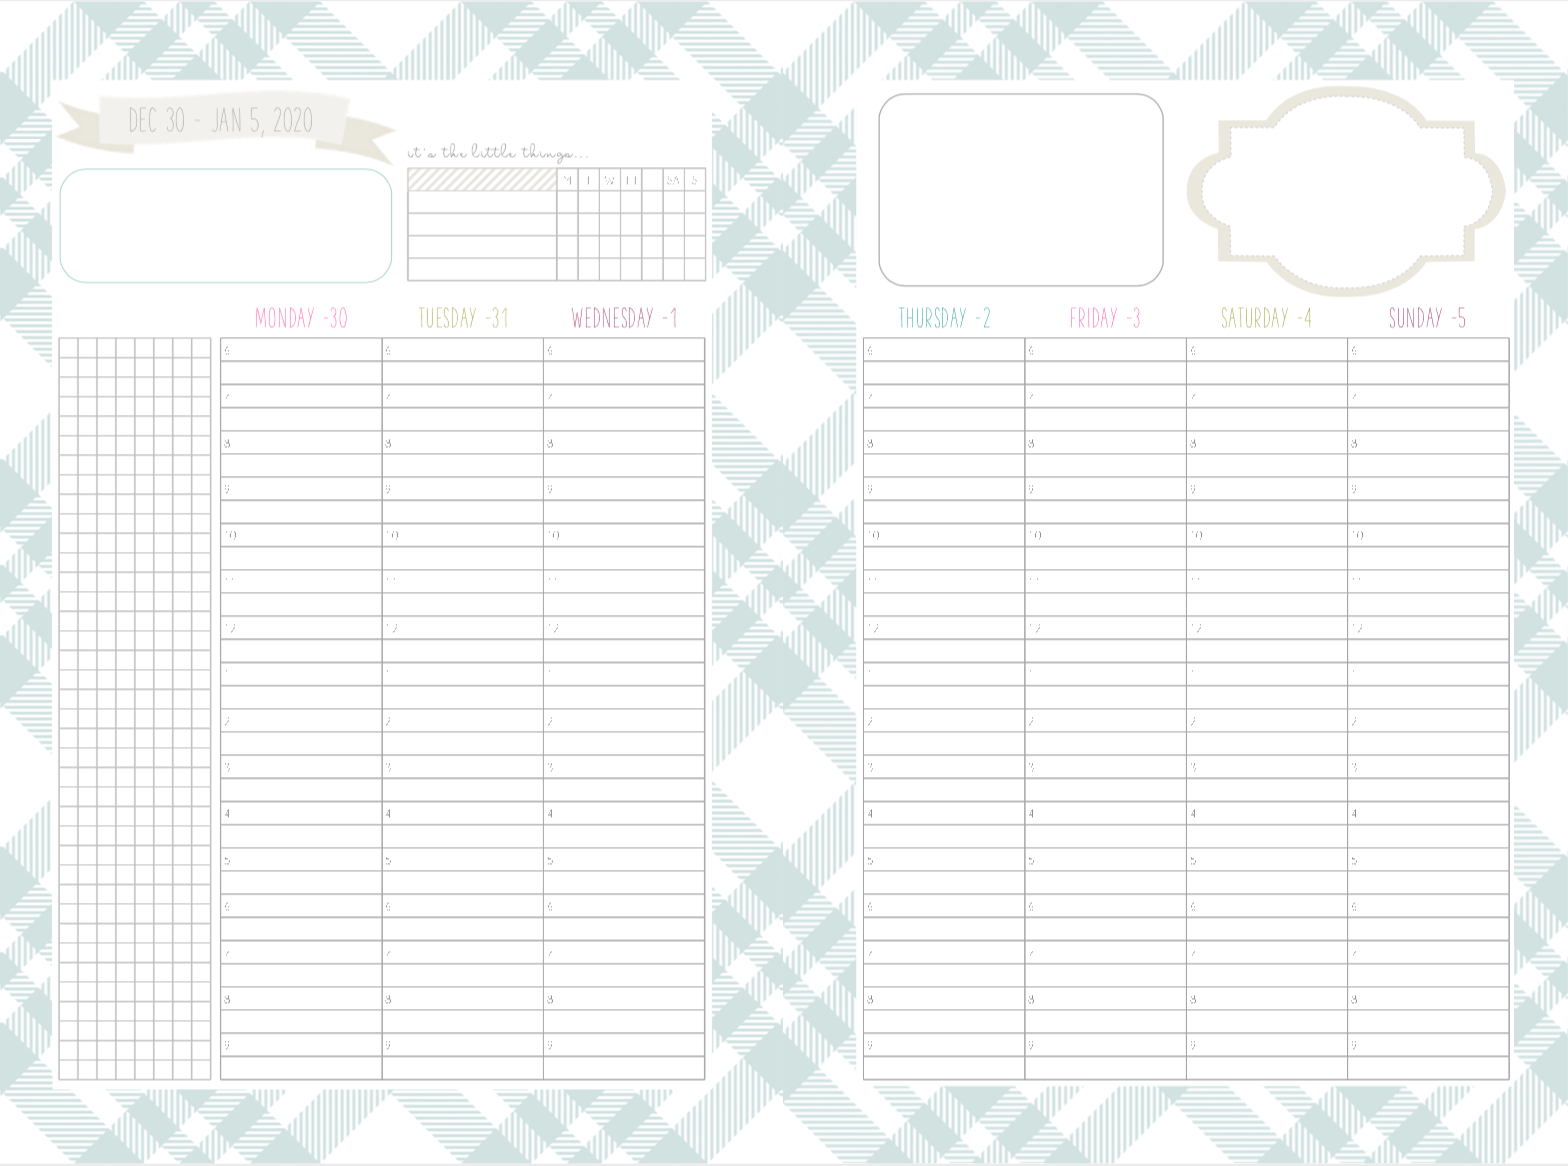 photo about Cute Hourly Planner named Yourself can presently pick out against 6 choice weekly patterns